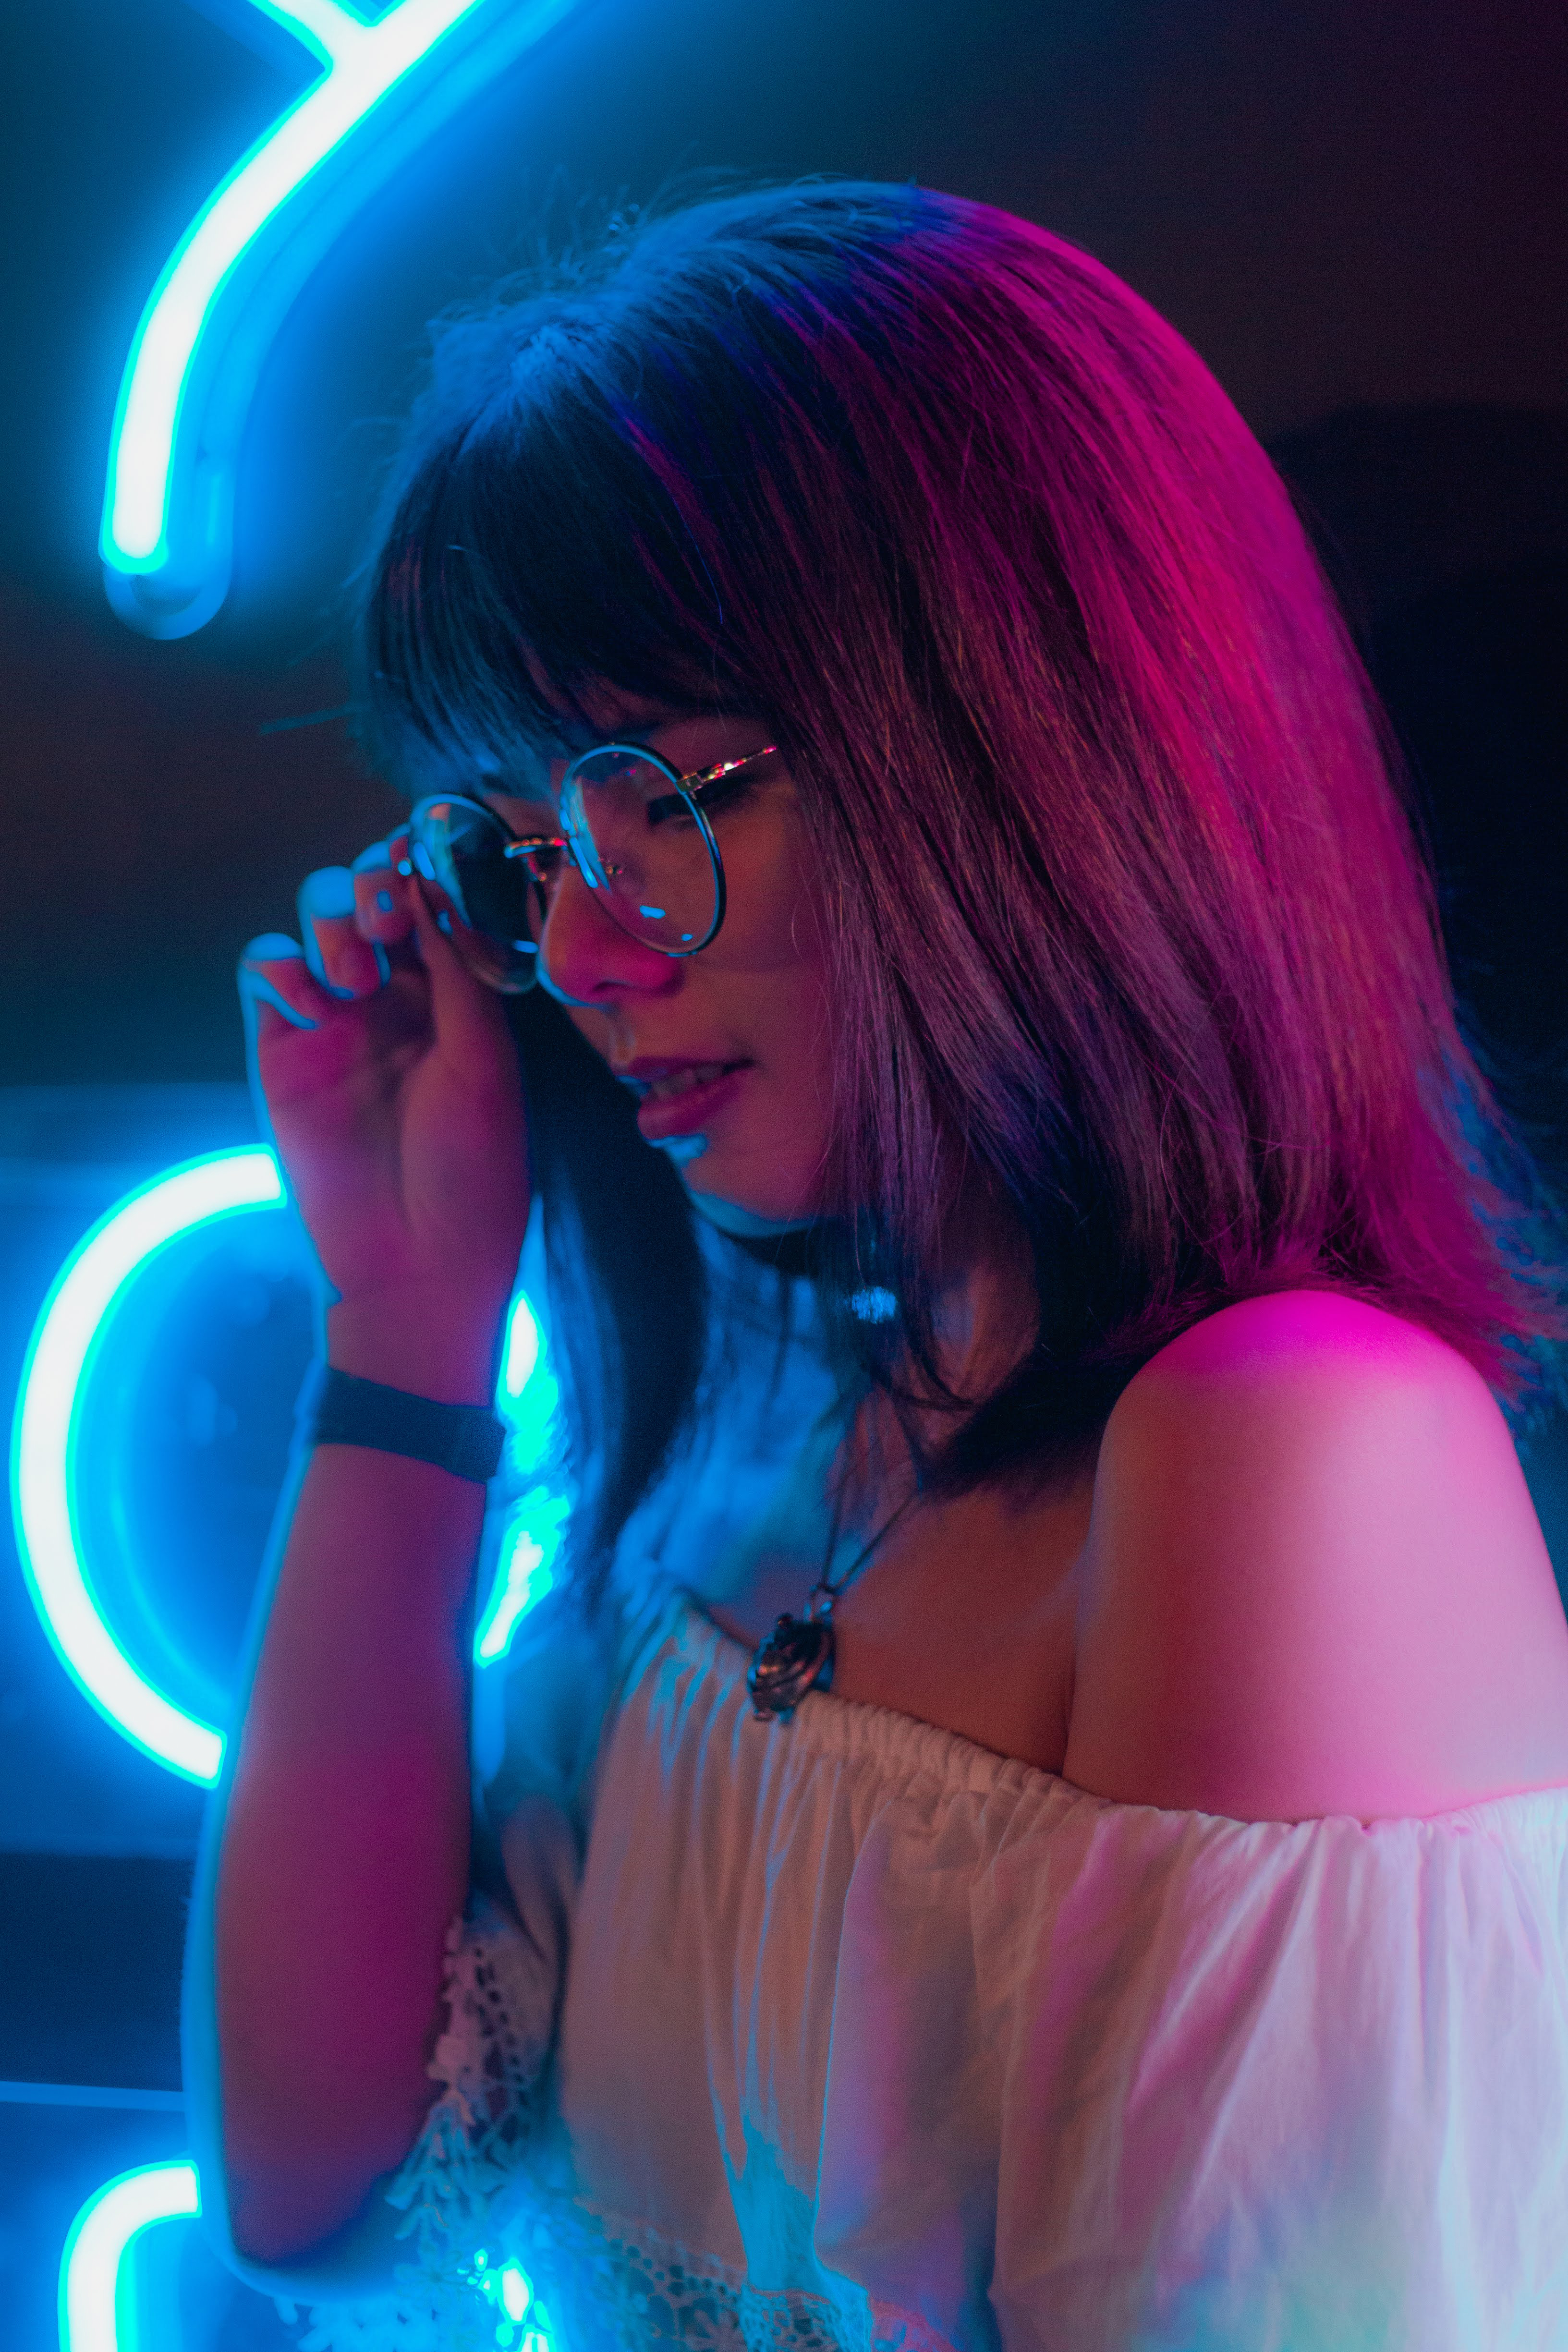 Girl Portrait on light installation   Prudential Carnival 2018   Singapore